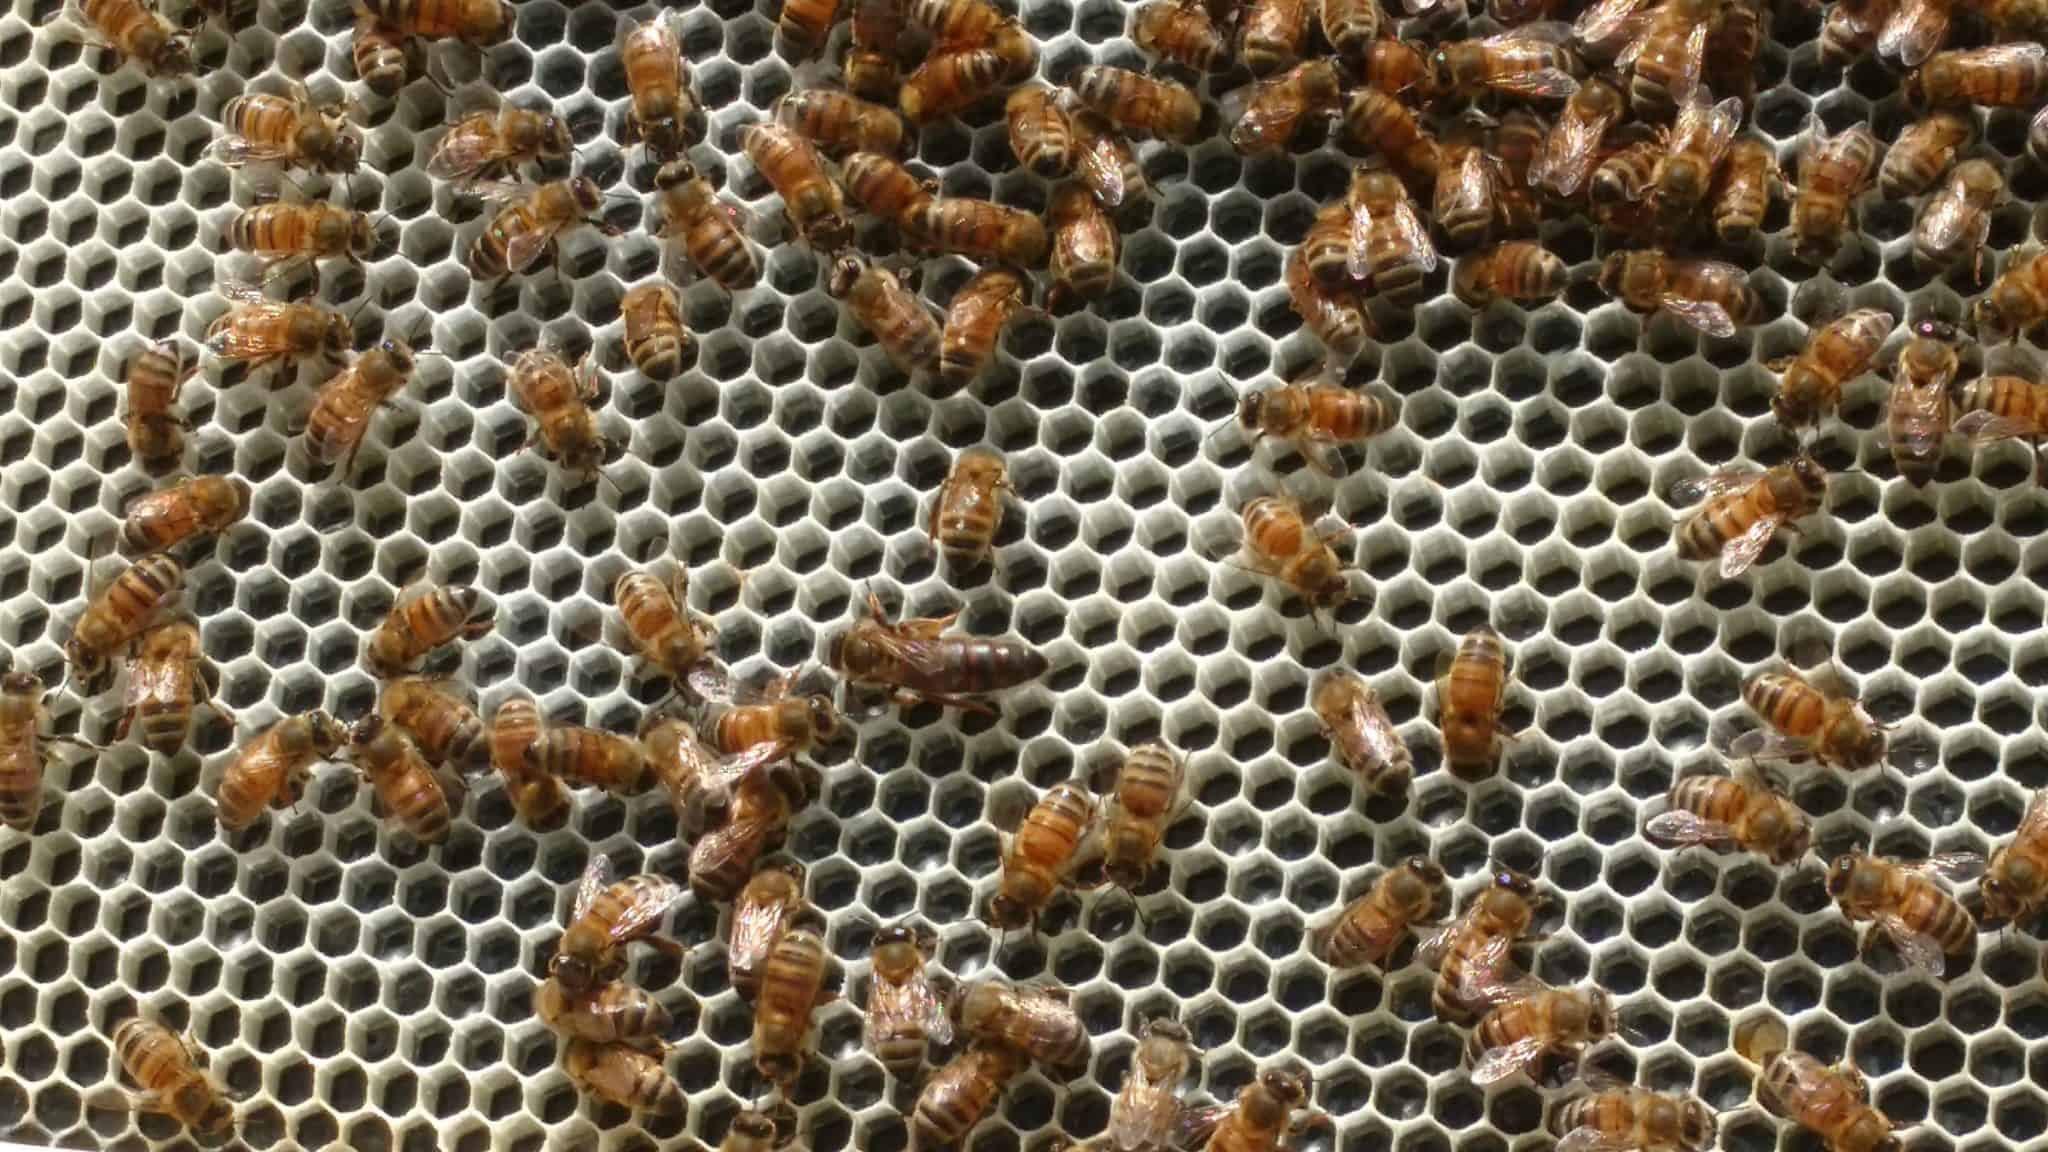 Monitoring Varroa Mite Levels